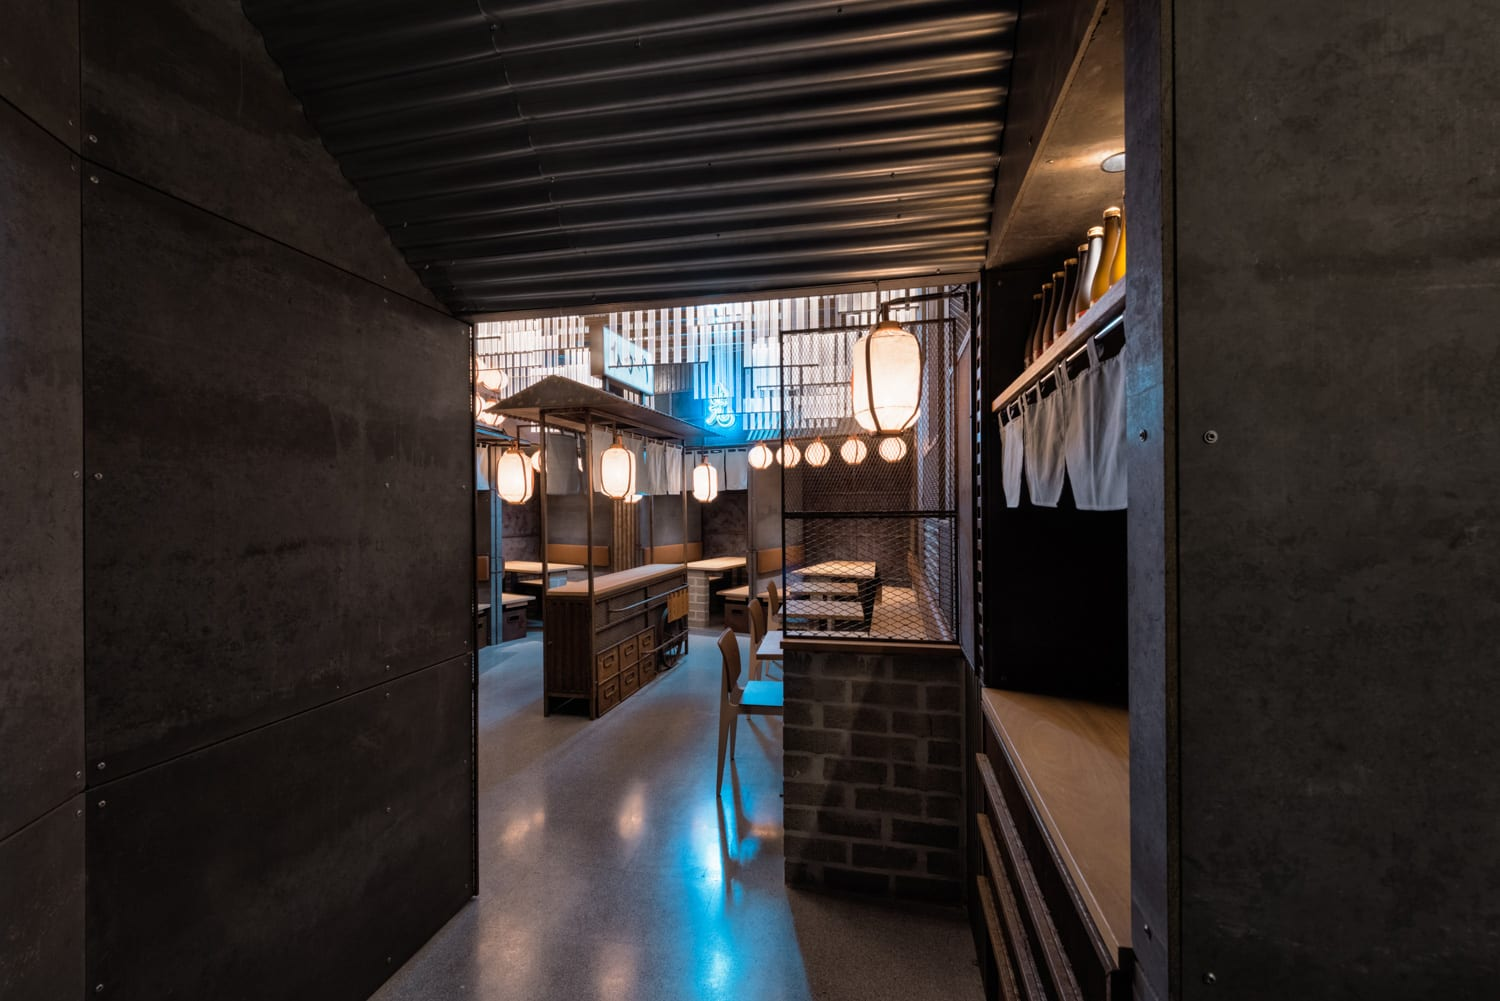 Interior Design by Masquespacio seen at Hikari Yakitori Bar, València - Interior Design